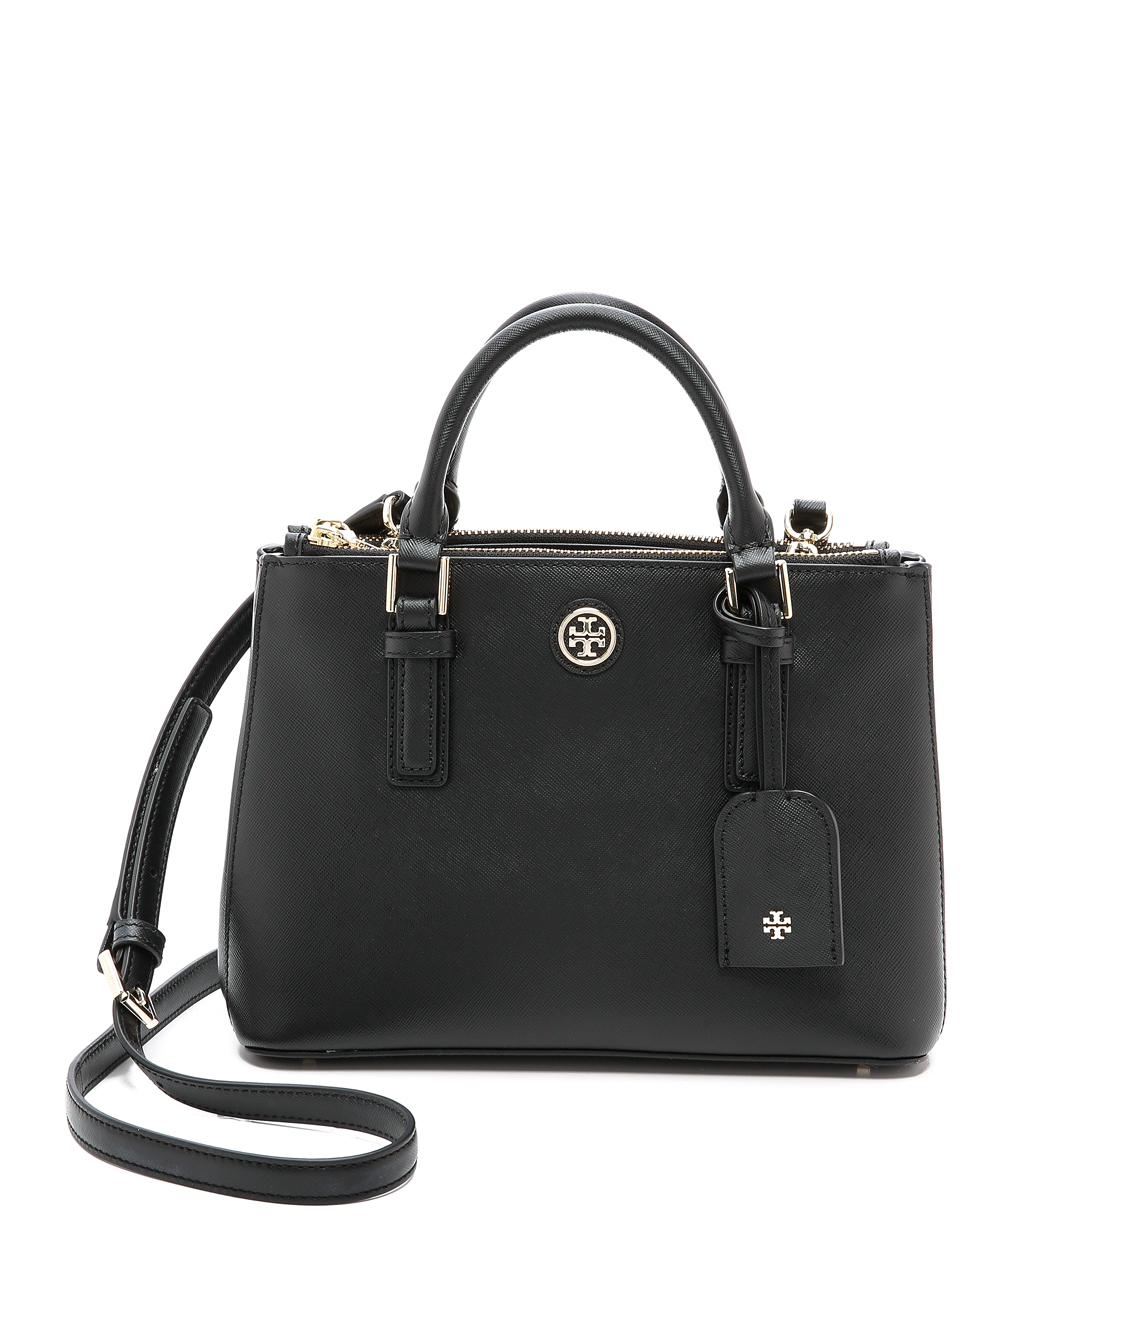 7159092f6422 tory-burch-robinson-micro-double-zip-satchel-3.jpg